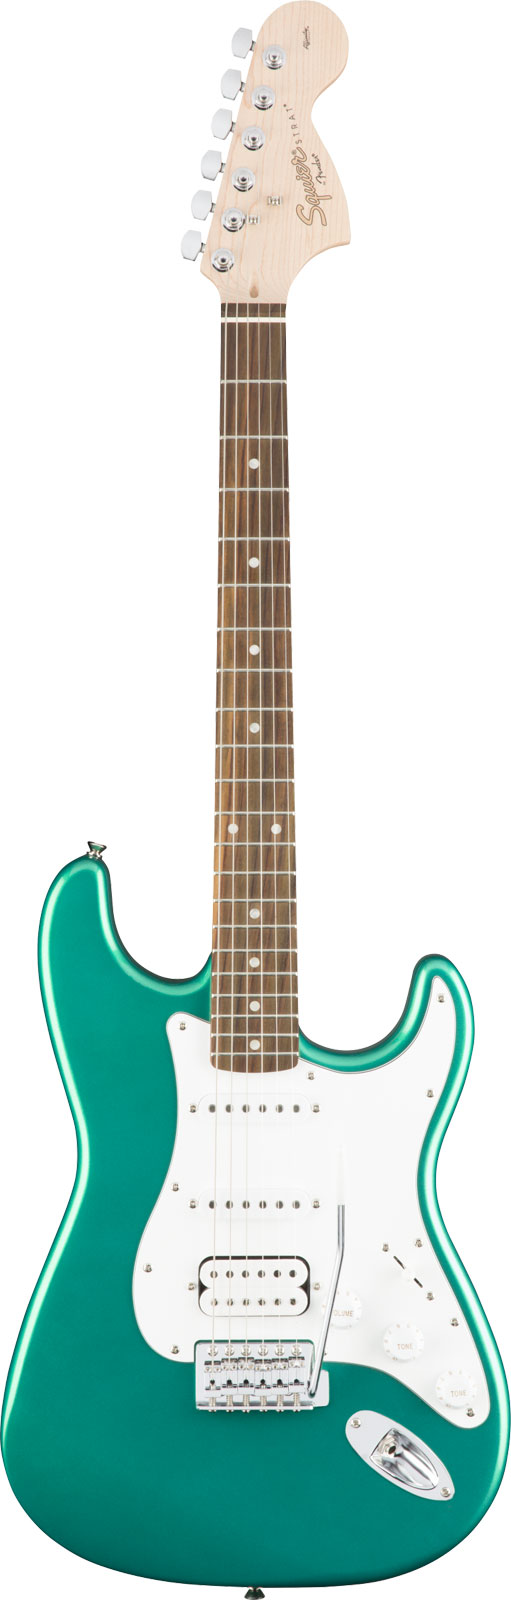 Squier By Fender Affinity Series Stratocaster Hss Laurel Fingerboard Race Green